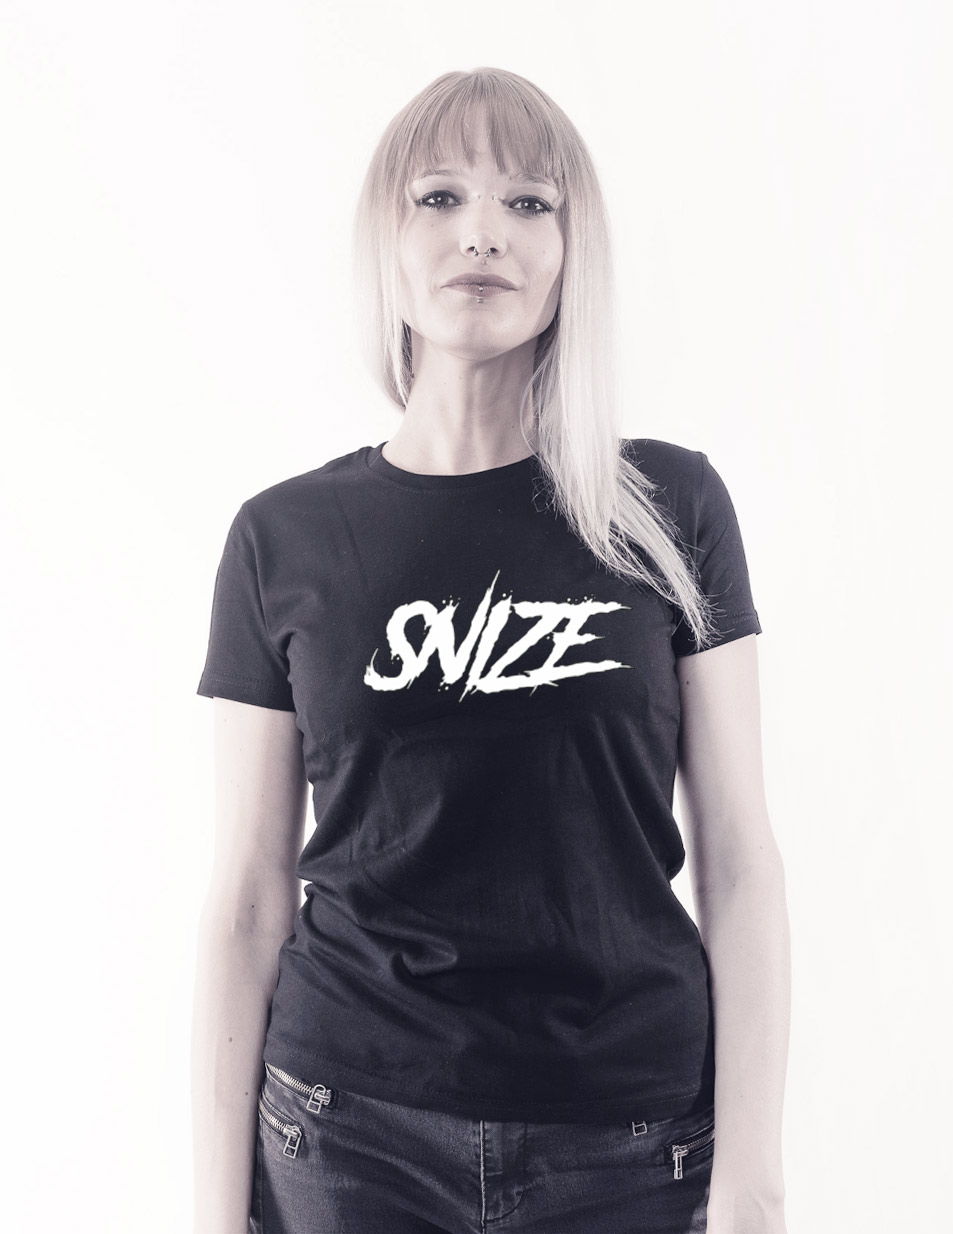 SNIZE Girly T-Shirt